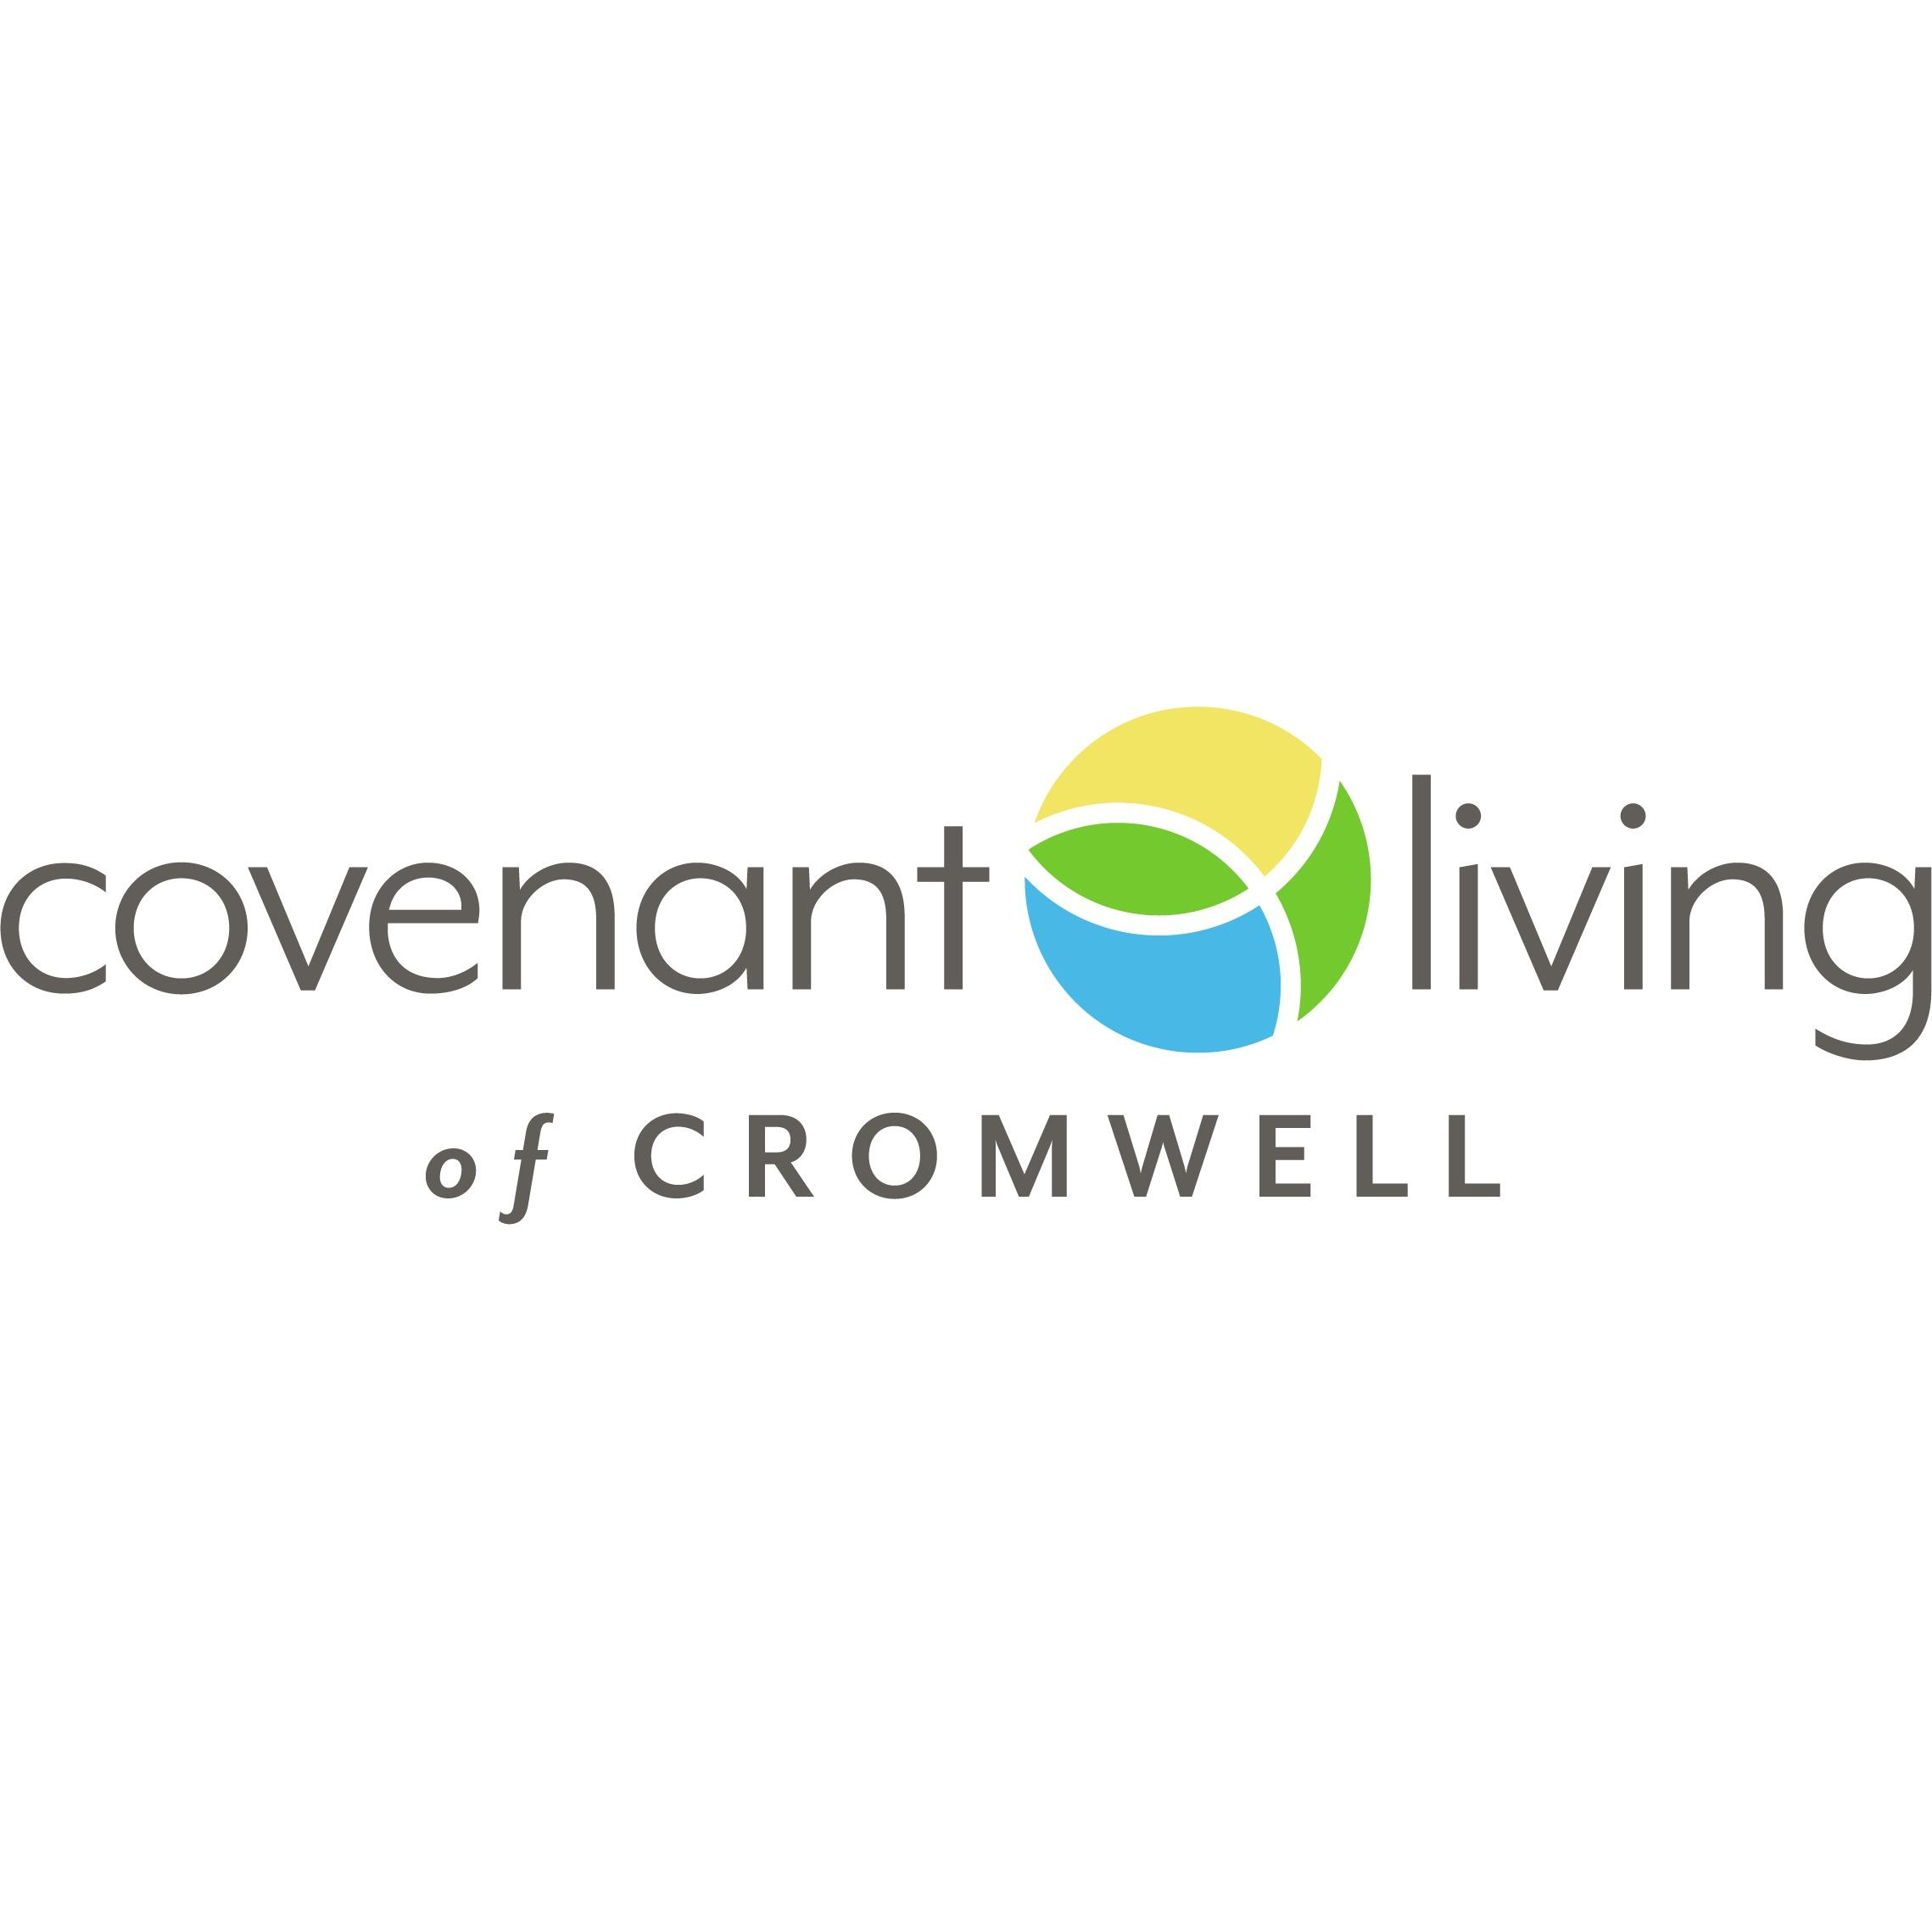 Covenant Living of Cromwell